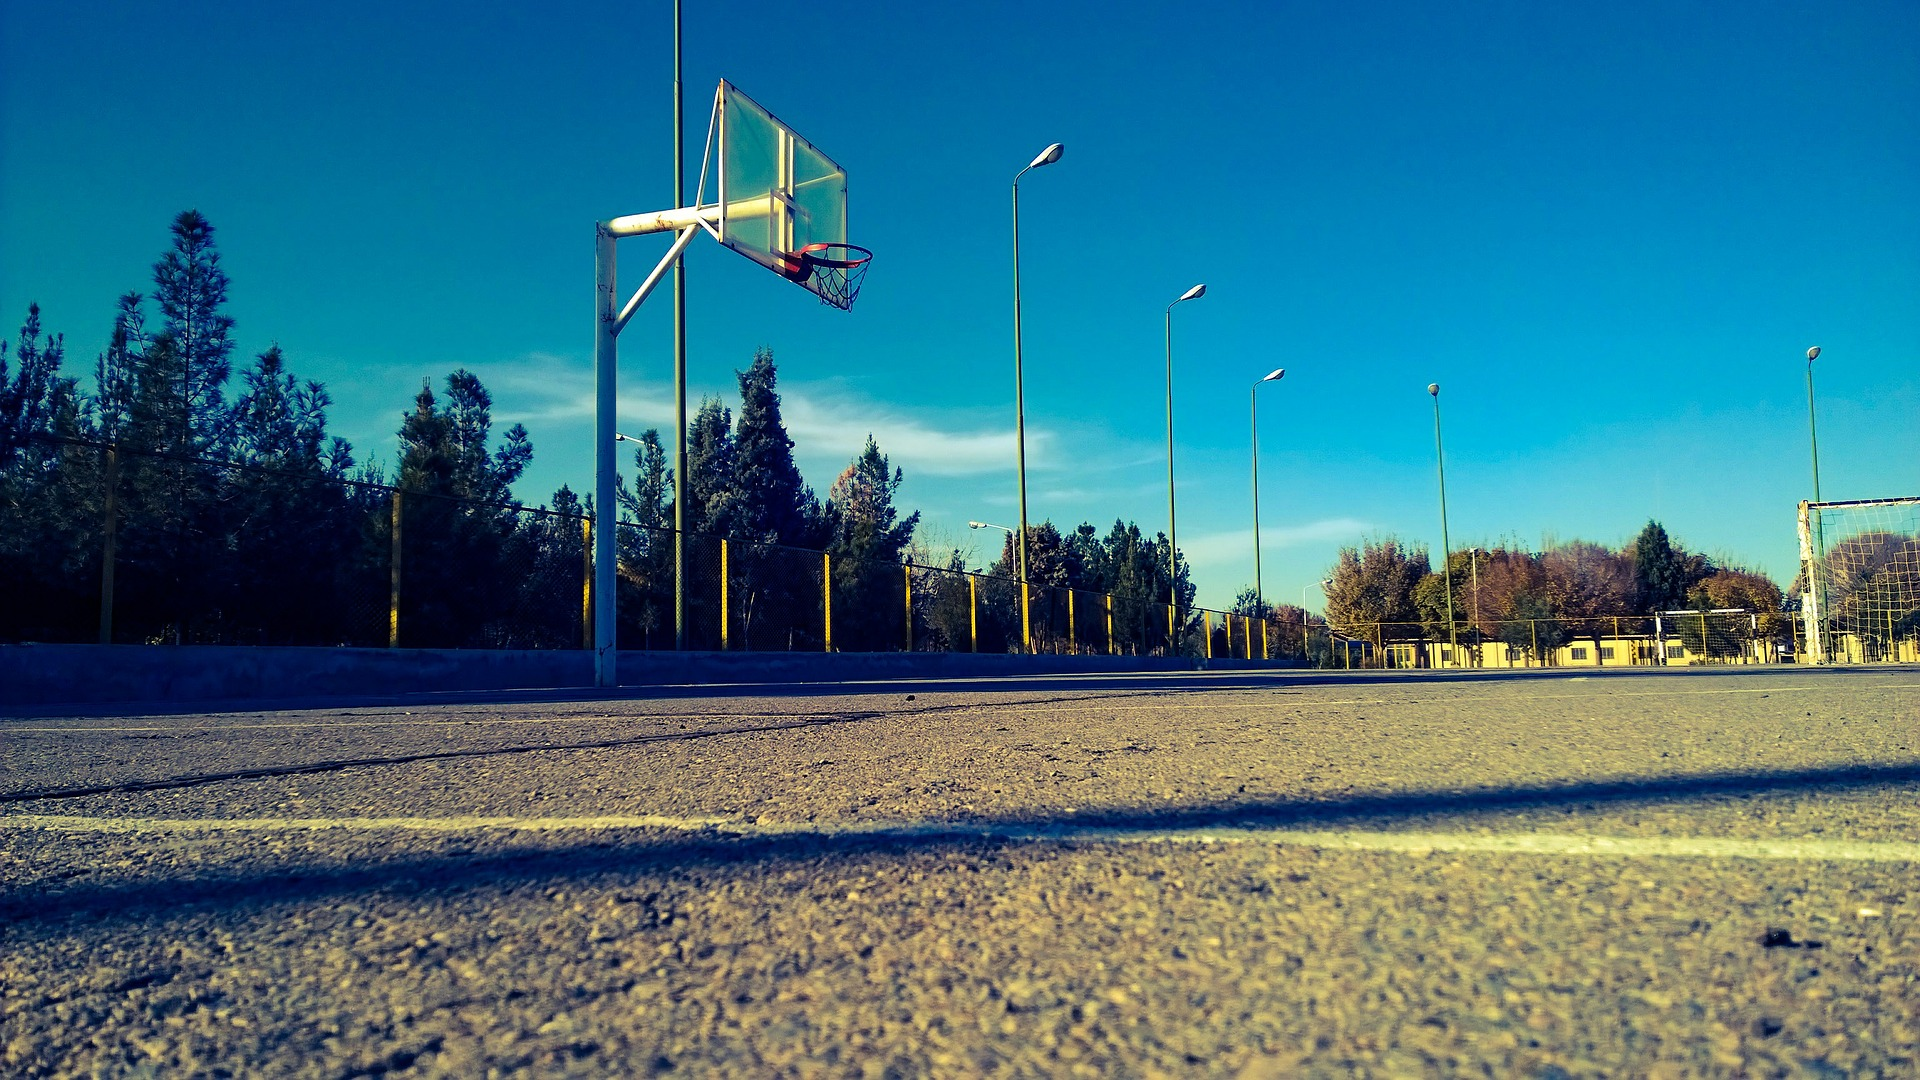 basketball court image